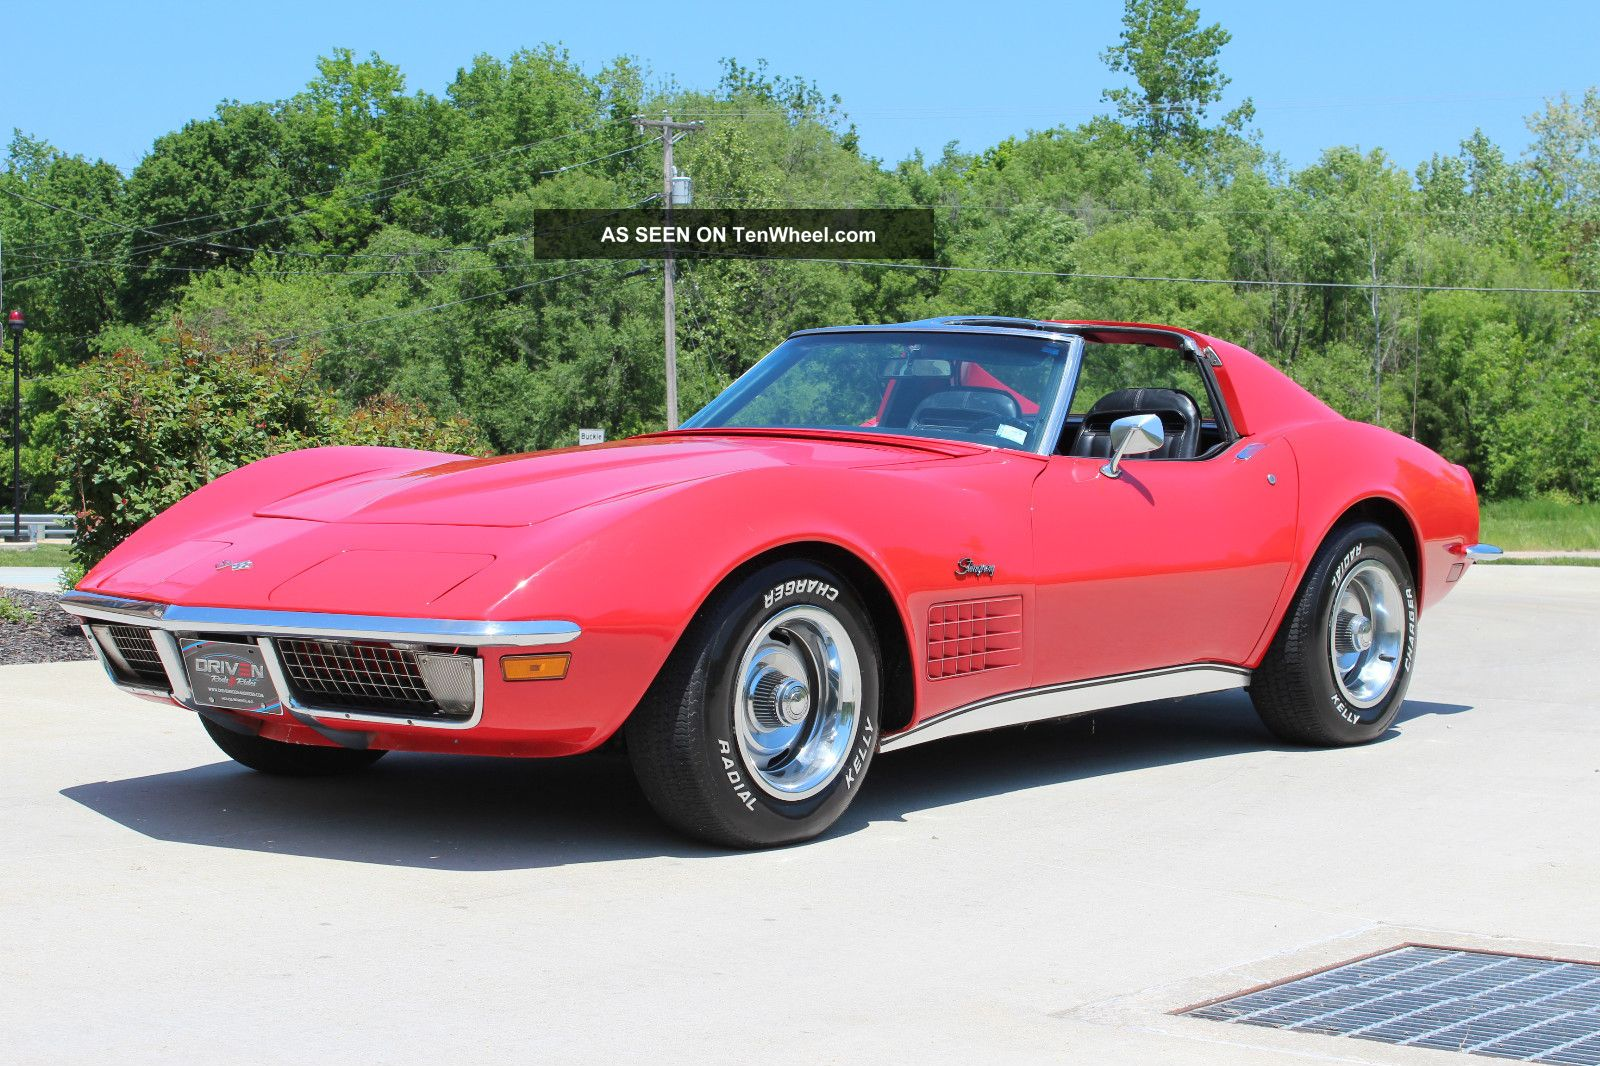 1971 Chevrolet Corvette Stingray, 350 V8, Ps, Pb, Pw, S Match, Ac ...